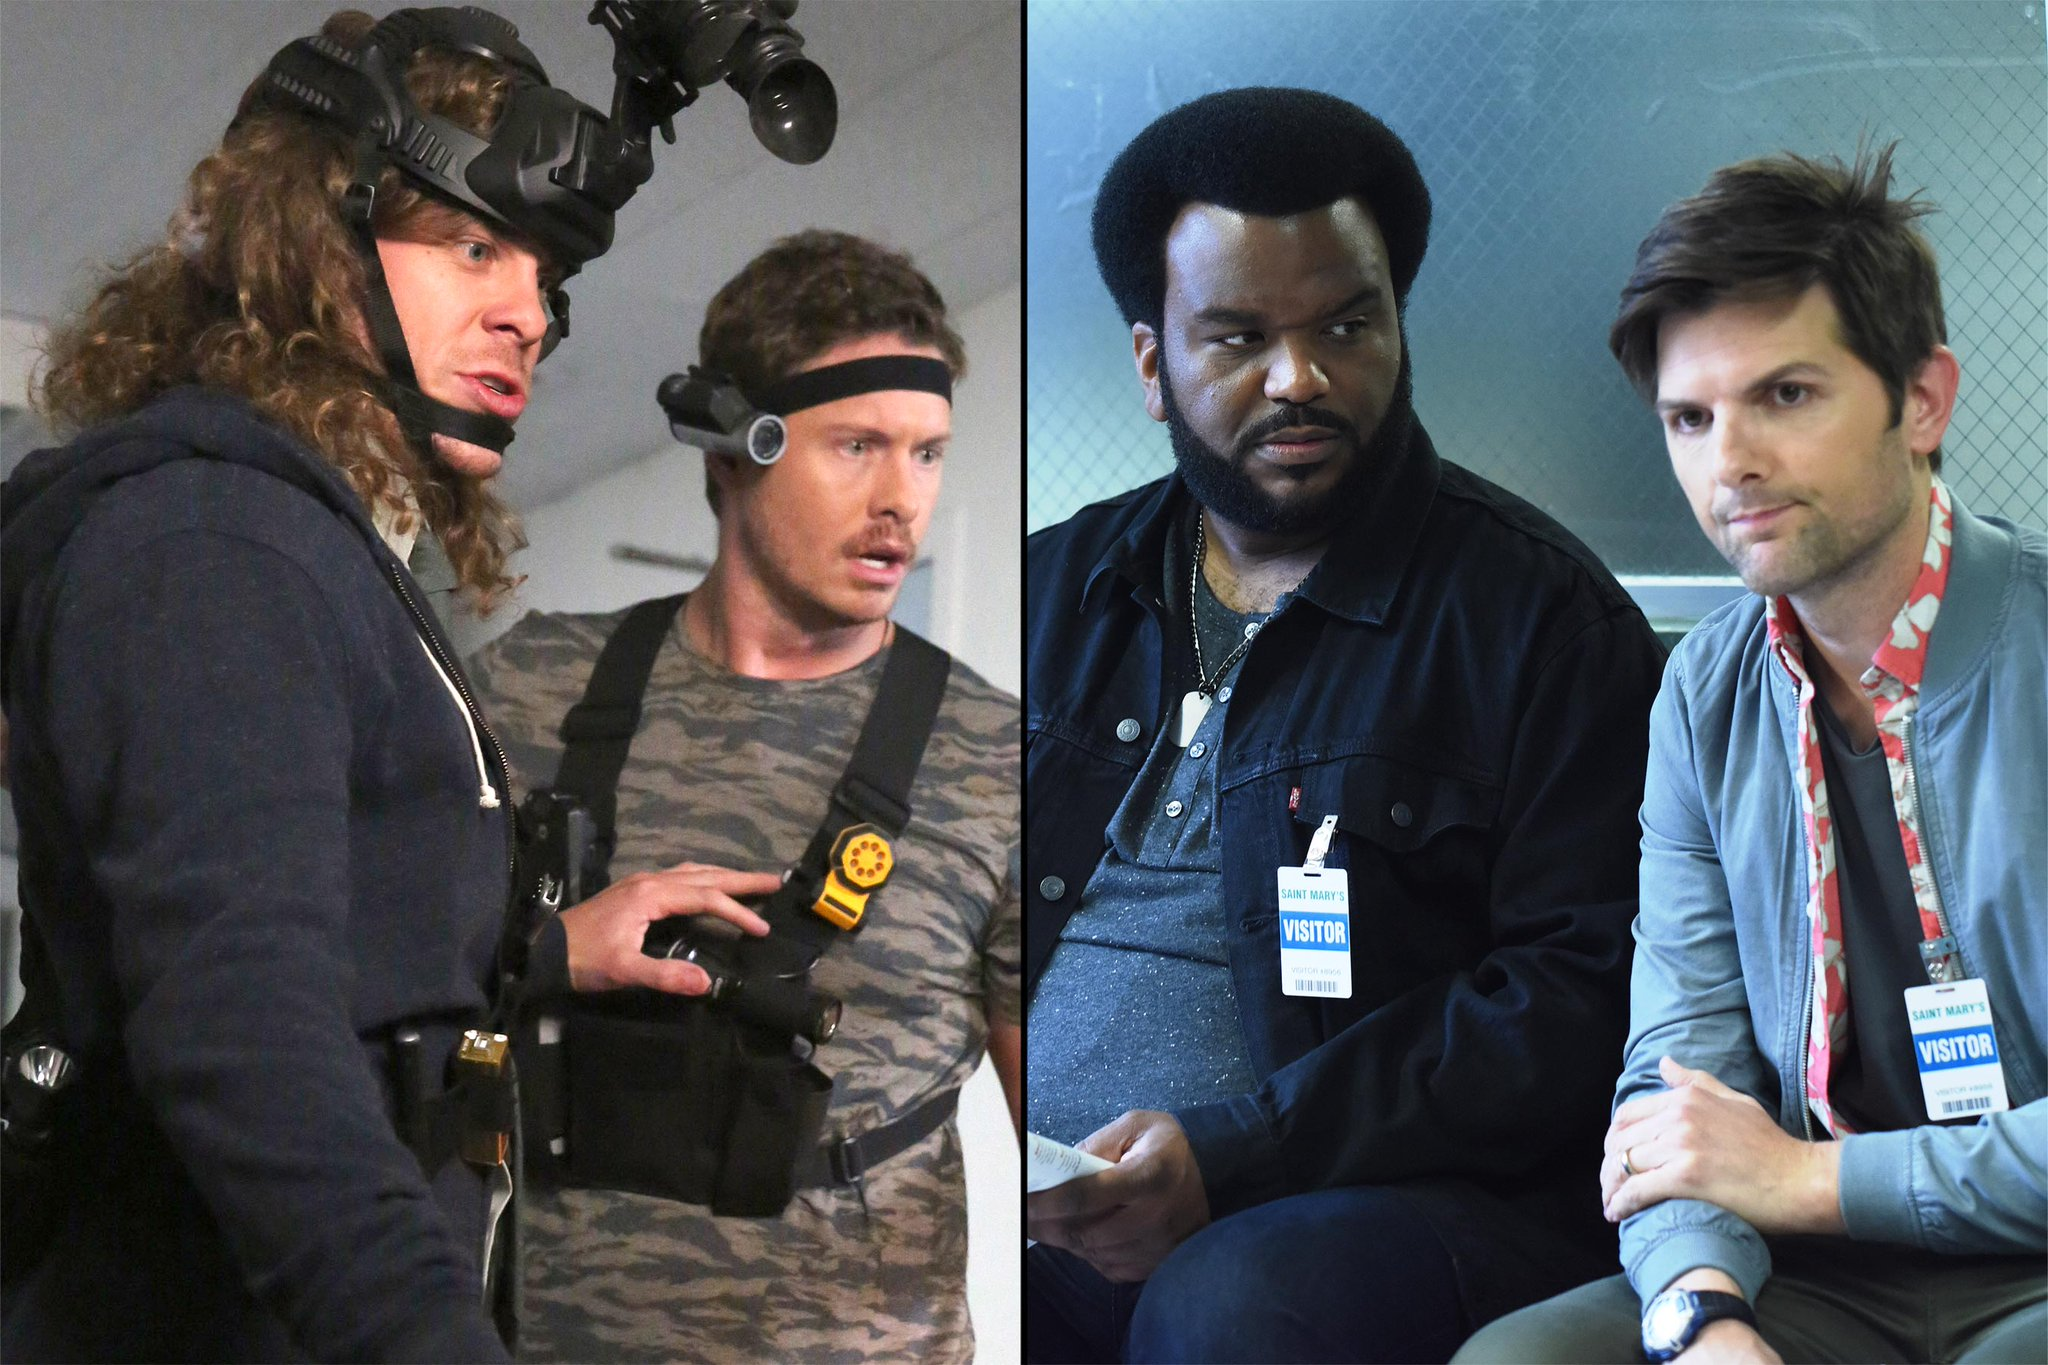 Things are about to get weird(er): #Workaholics mini-reunion coming to #Ghosted https://t.co/ilgWqKtsve https://t.co/tVZXbOiguC